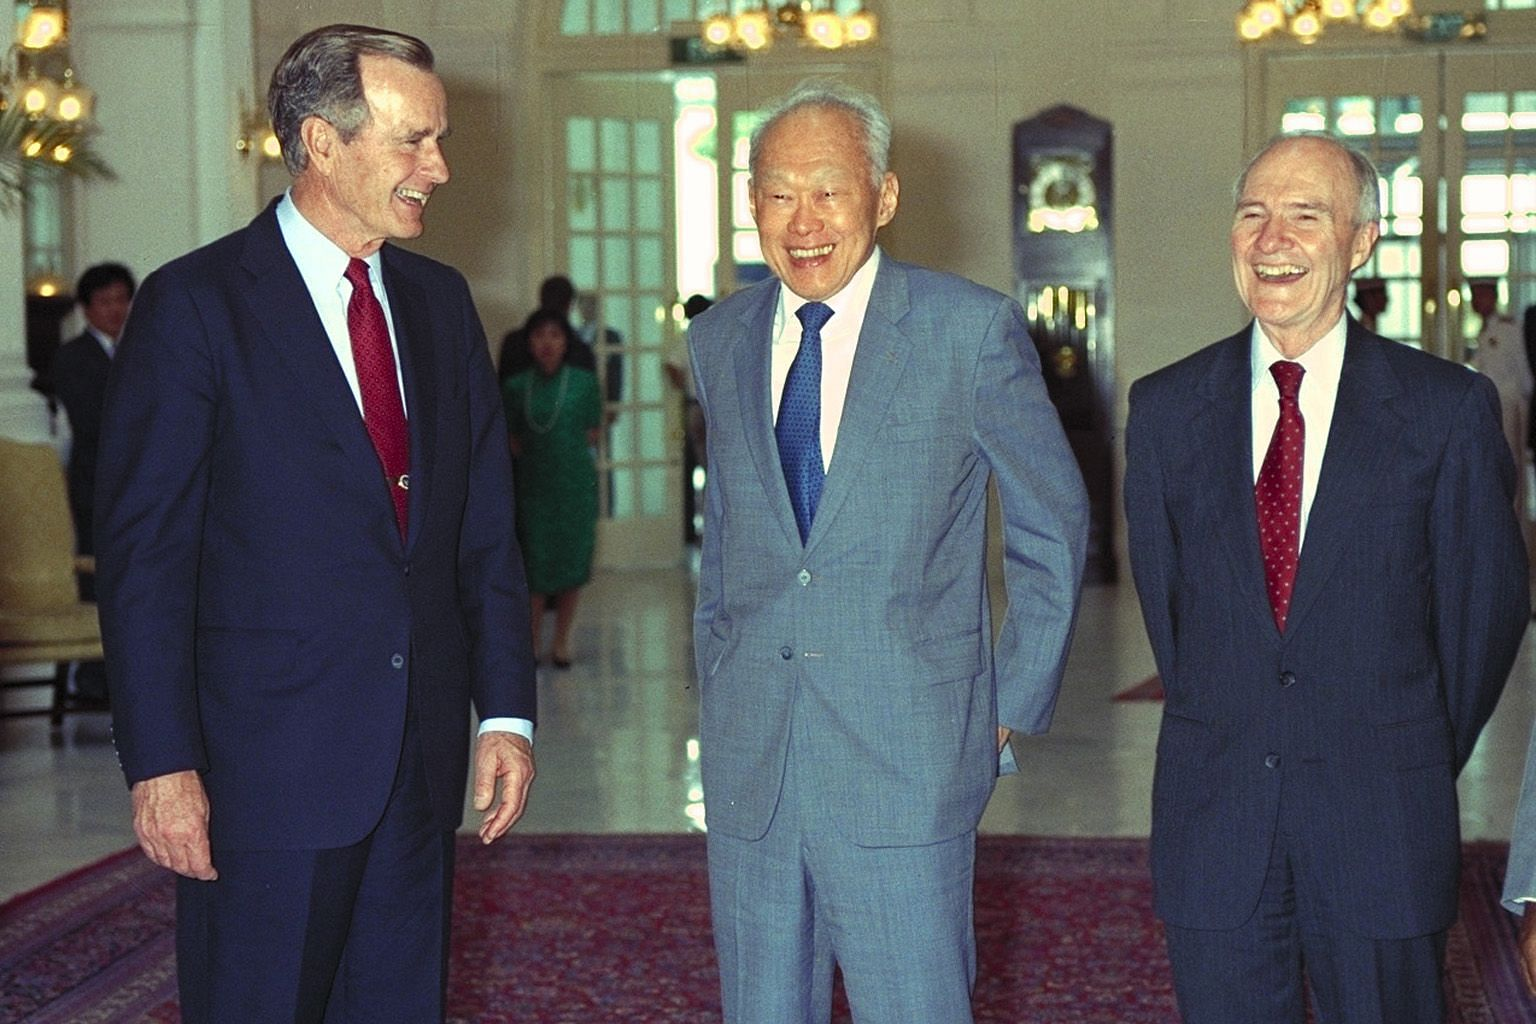 Mr Bush meeting then Prime Minister Goh Chok Tong in June 1998 at the Raffles Hotel. He was in Singapore for a stopover with his wife Barbara and Mr Goh, accompanied by Mrs Goh, visited them at the hotel. Mr Bush had offered to shake hands with Mr Go